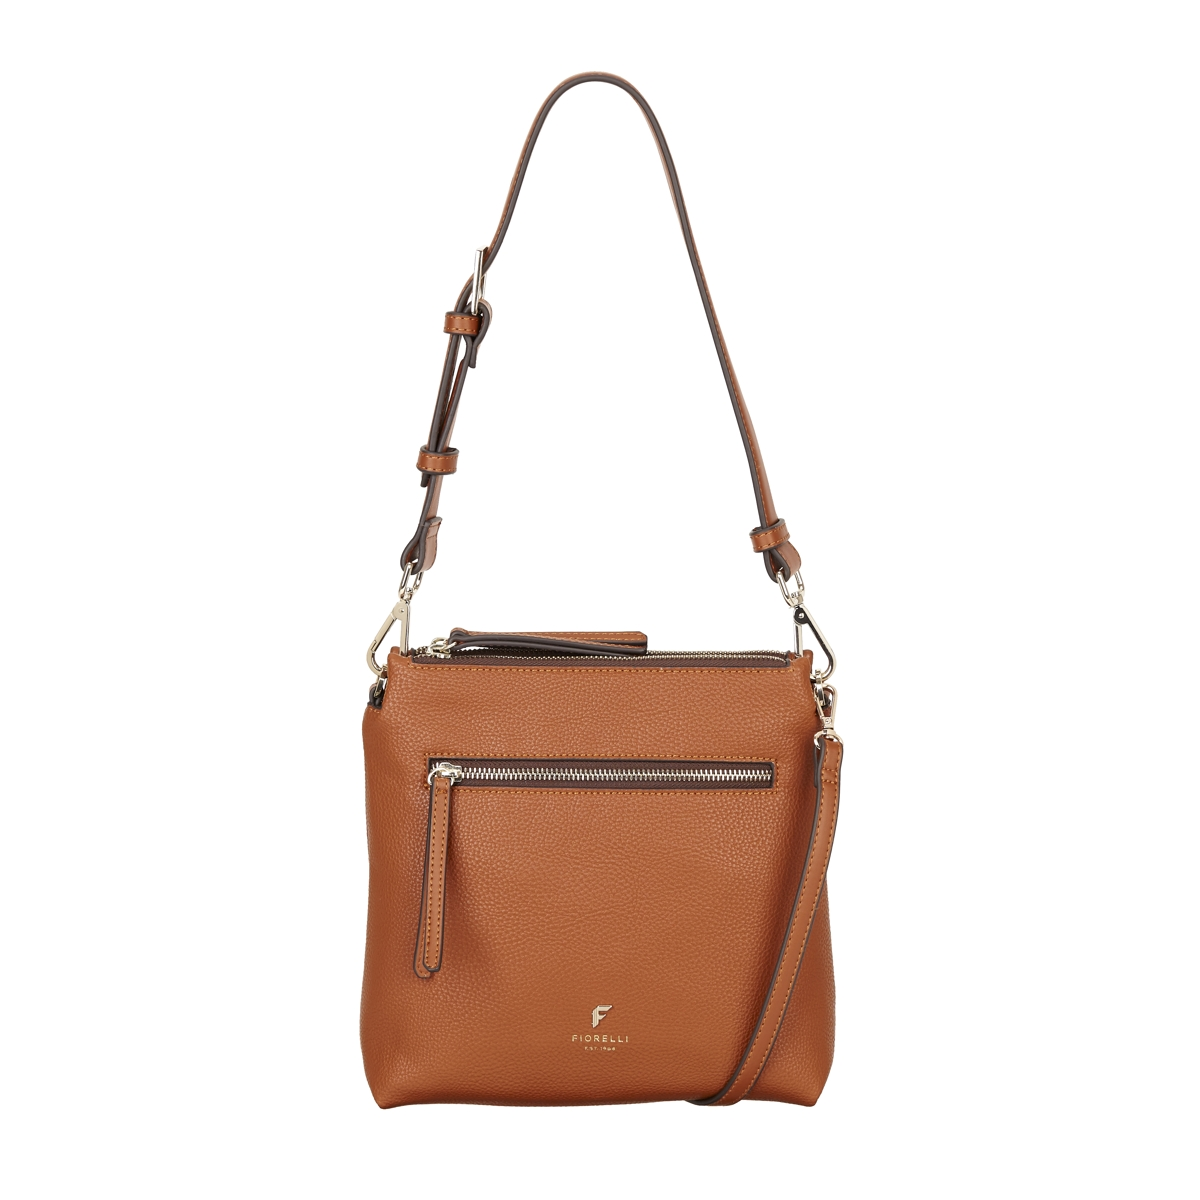 Kabelka Fiorelli Elliot Mini Satchel FH8671 Tan